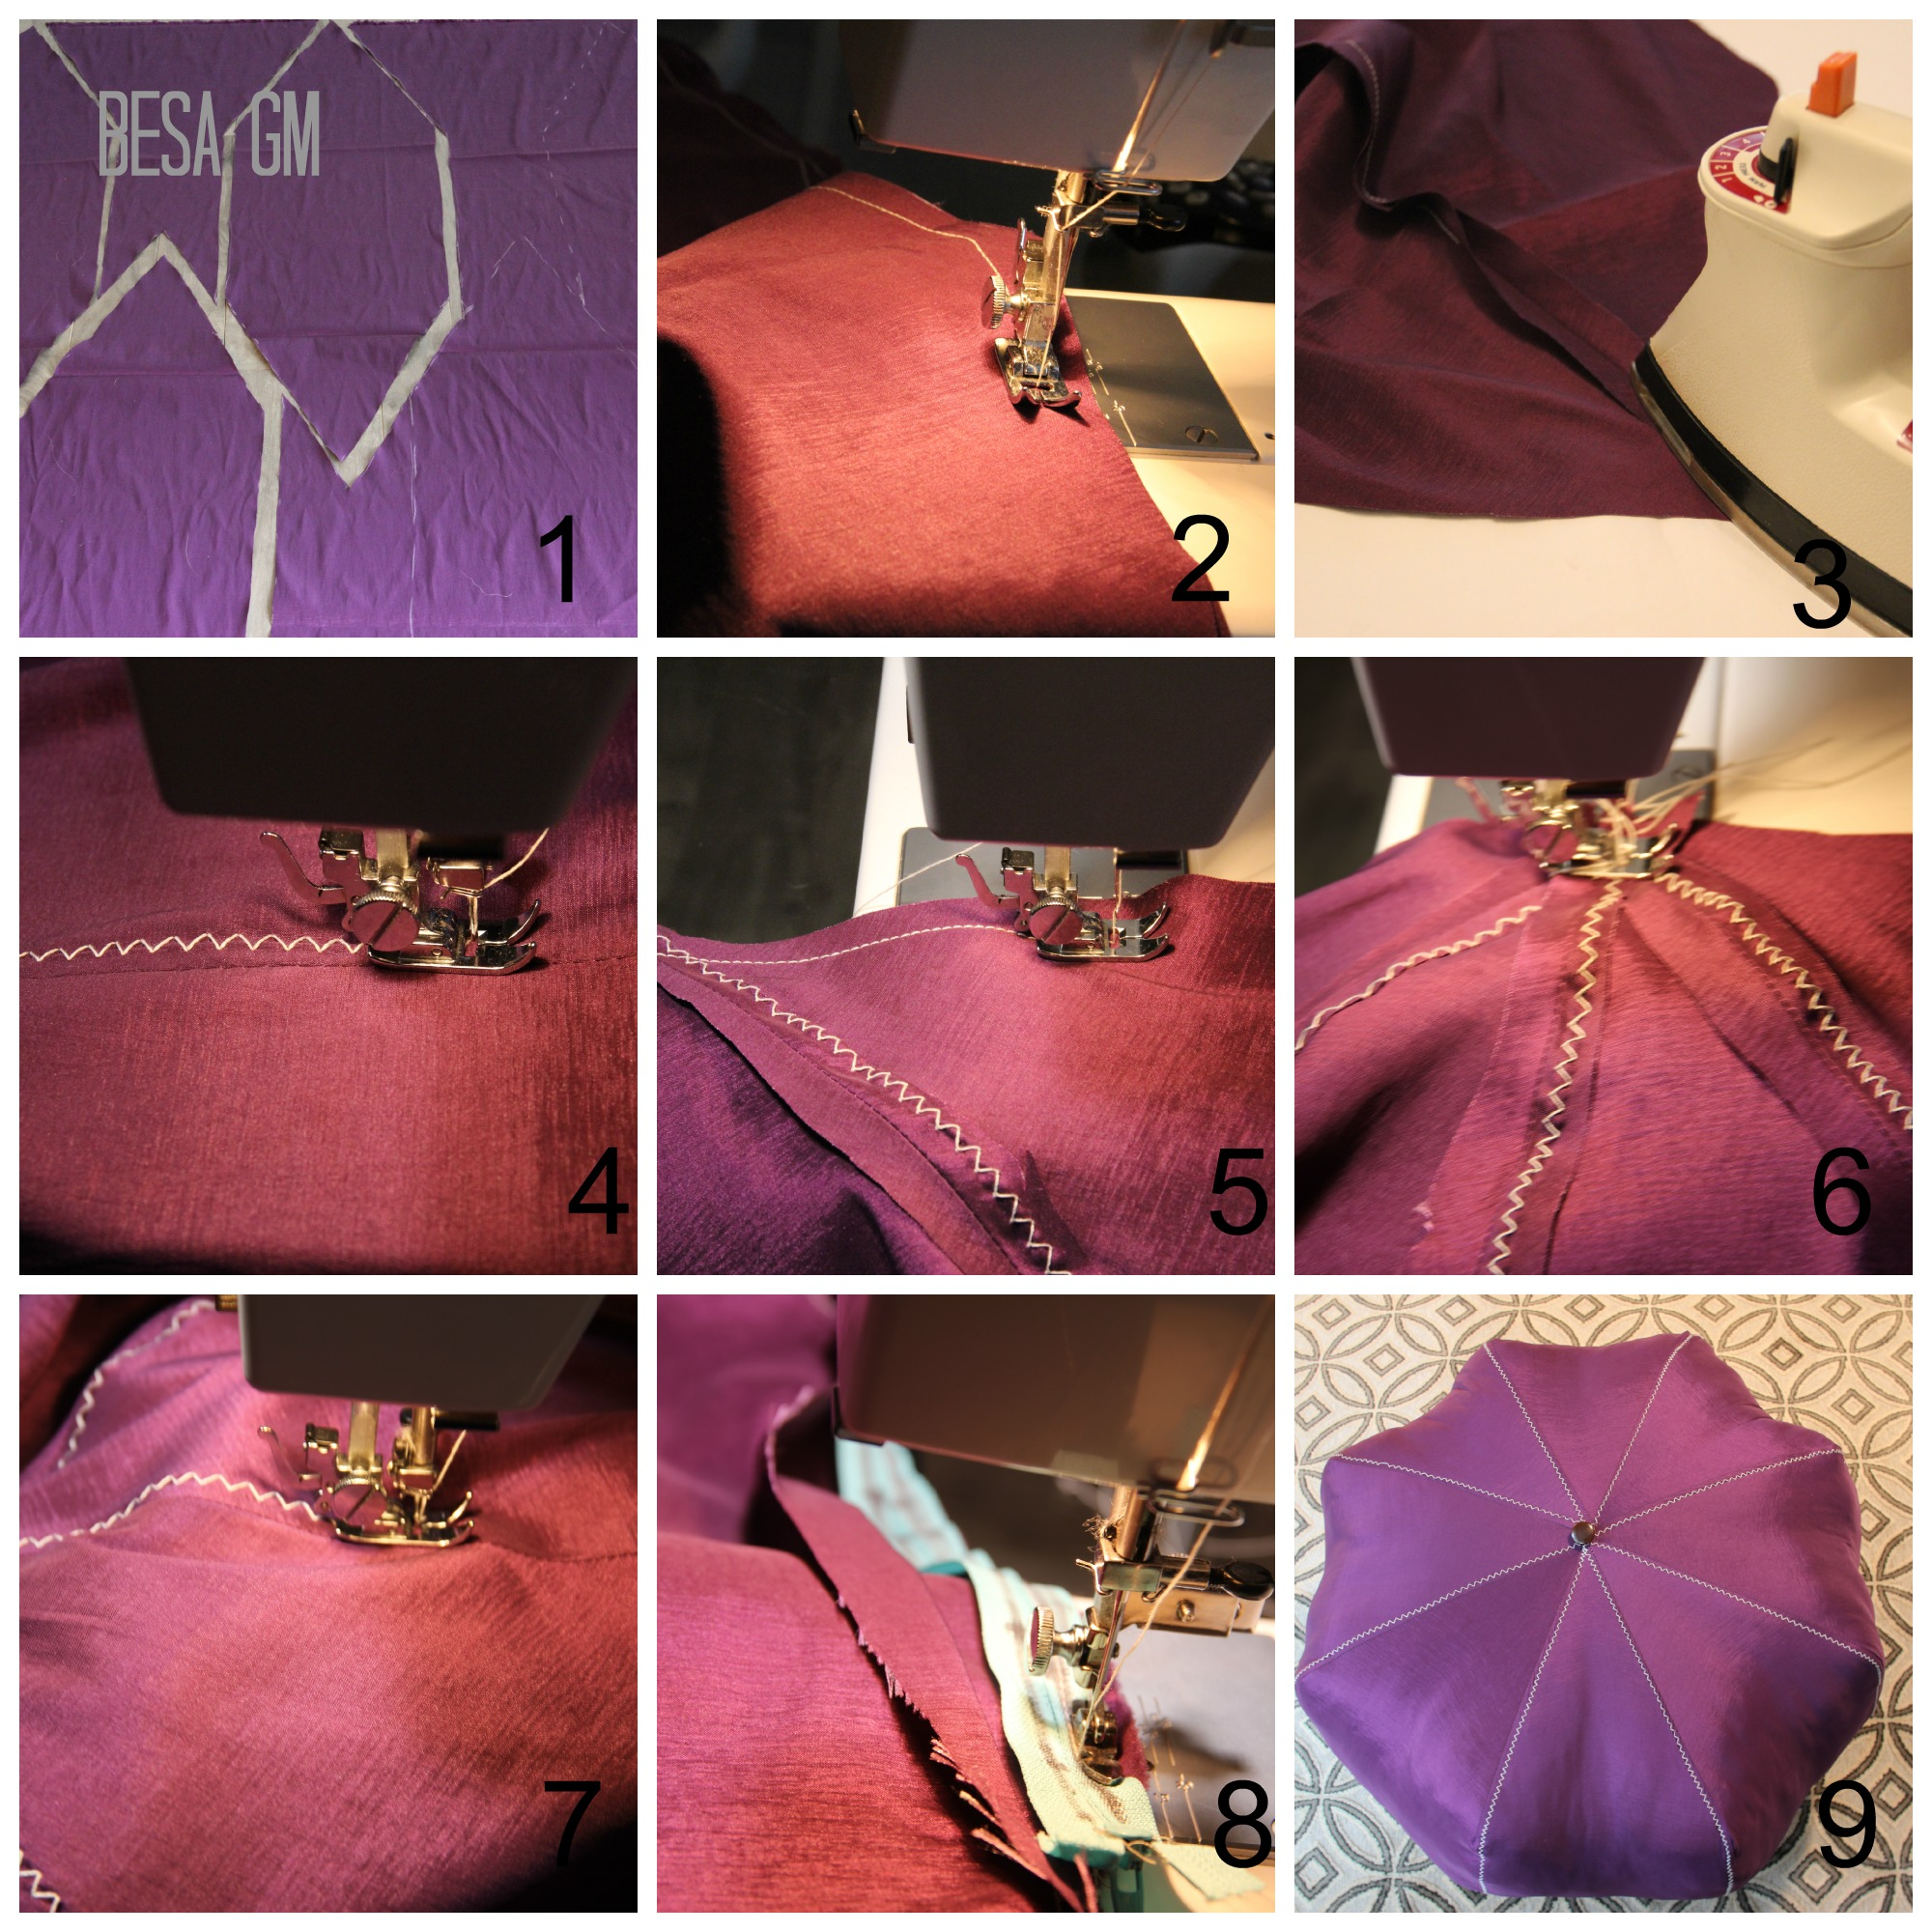 Diy moroccan pouf besa gm moroccan pouf sewing solutioingenieria Images